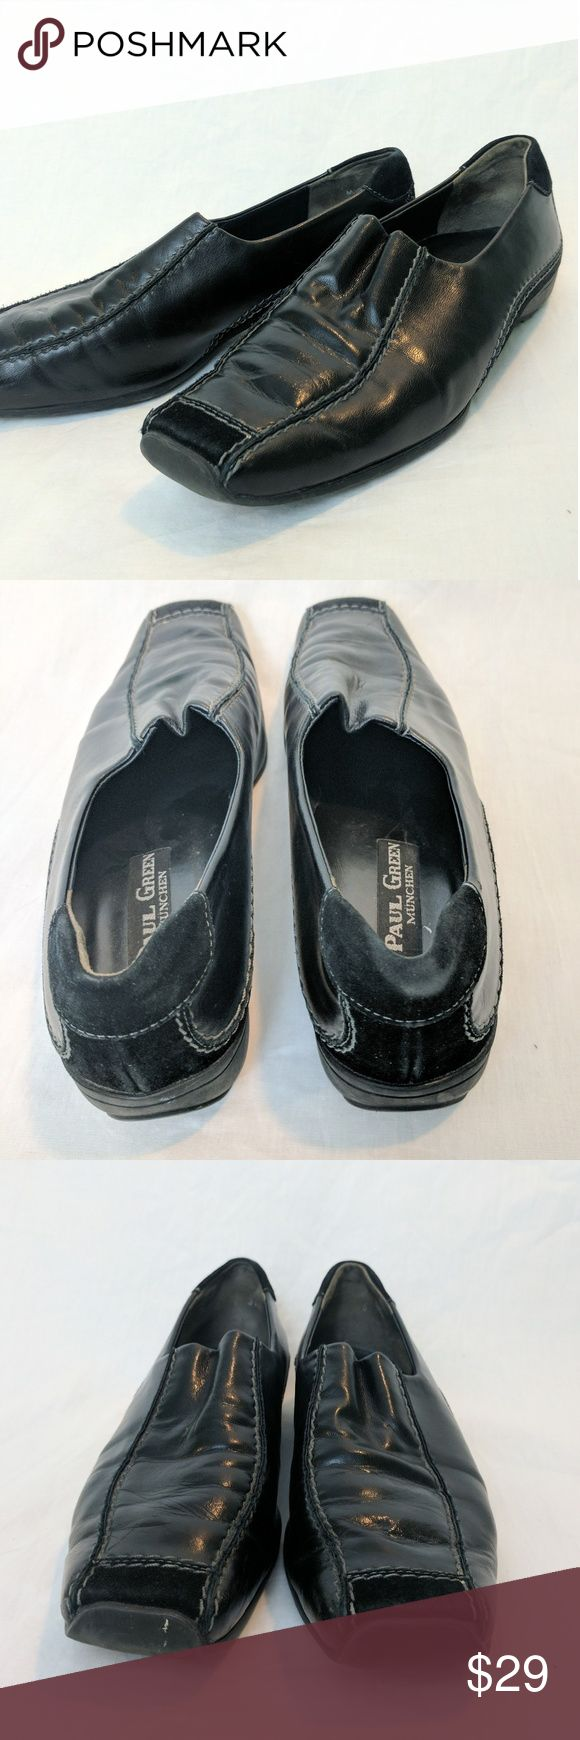 """Paul Green Munchen Lucy loafers These pre-loved loafers from Paul Green show wear consistent with use, creasing, discoloration, and scuffs. I think they would be great for driving shoes.  Black synthetic sole, black leather upper  Grey contrast stitching  Made in Austria  UK Size 5 - Appx US Size 7.5  Appx 1"""" heel Paul Green Shoes Flats & Loafers"""